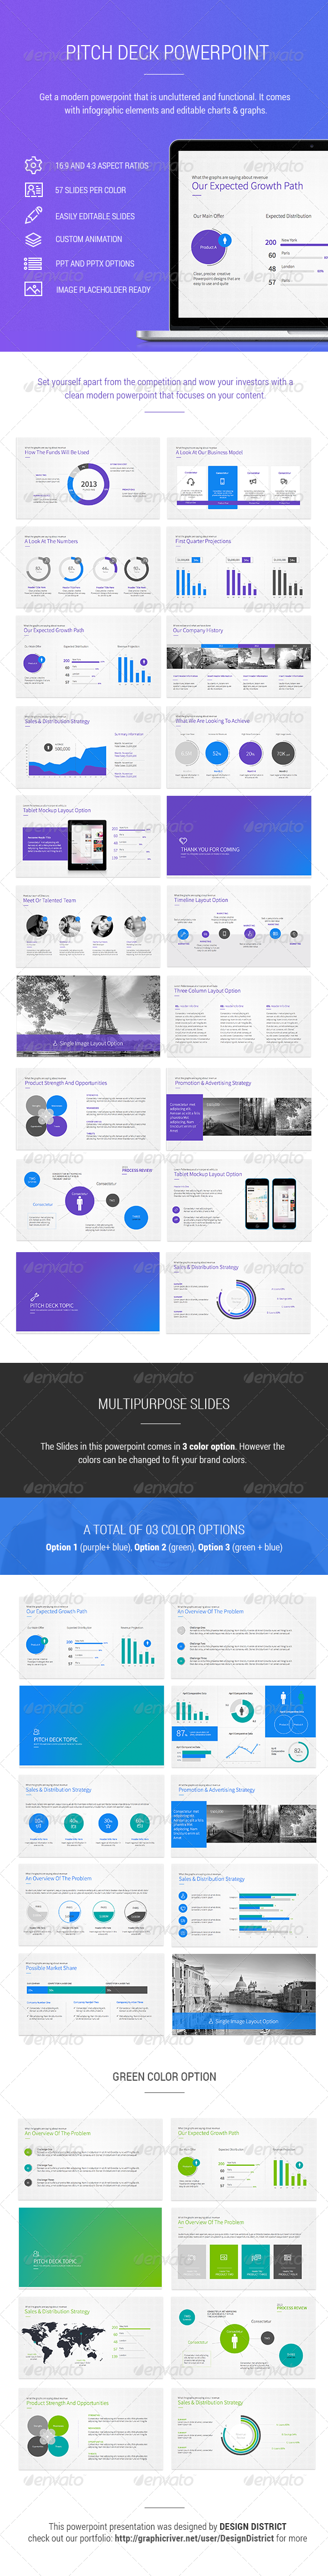 Pitch deck powerpoint by designdistrict graphicriver pitch deck powerpoint pitch deck powerpoint templates alramifo Images